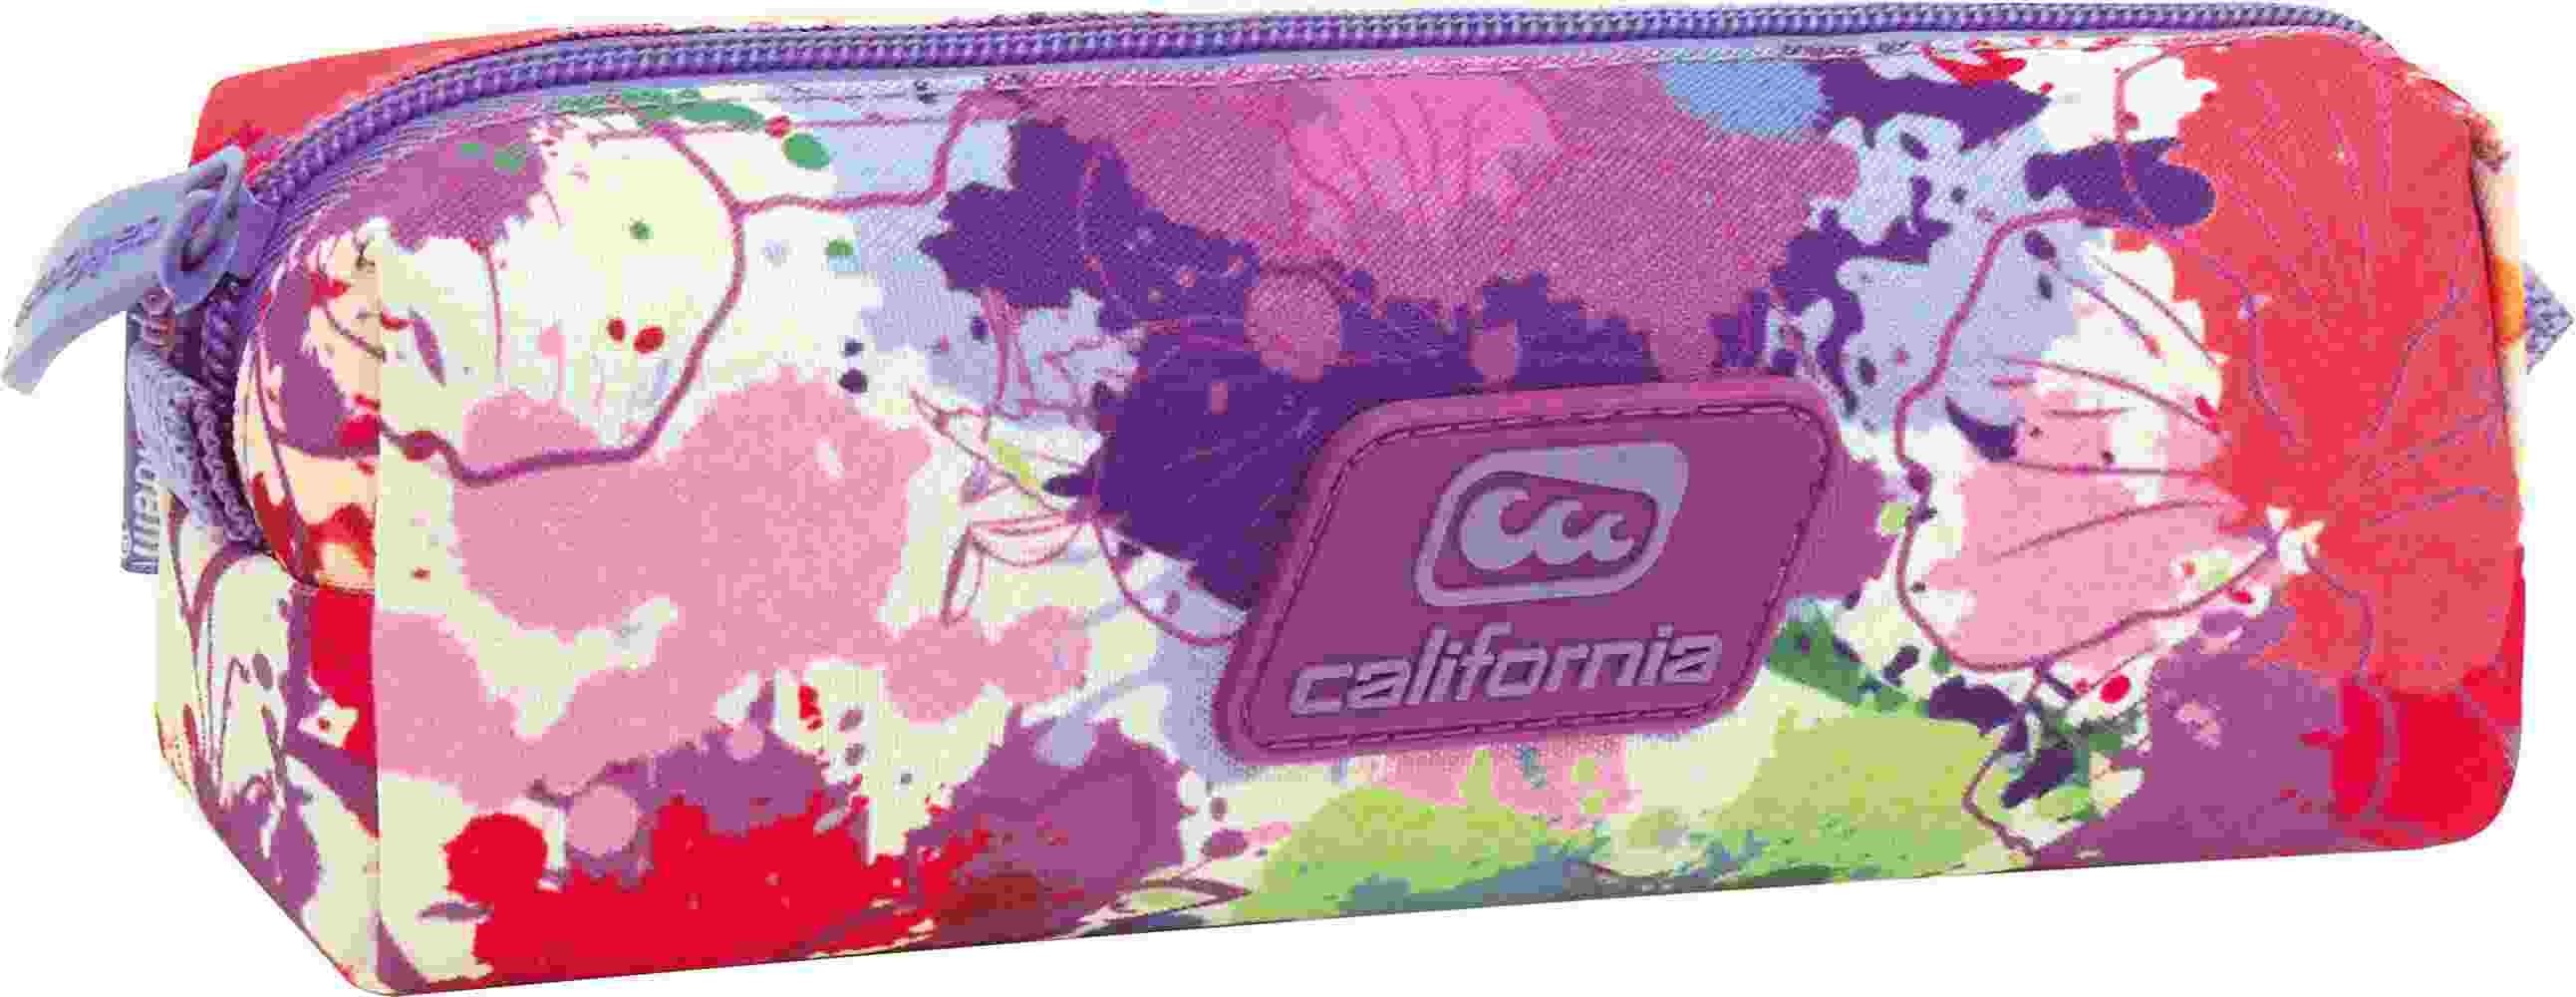 Estuche Cuadrado California Splash